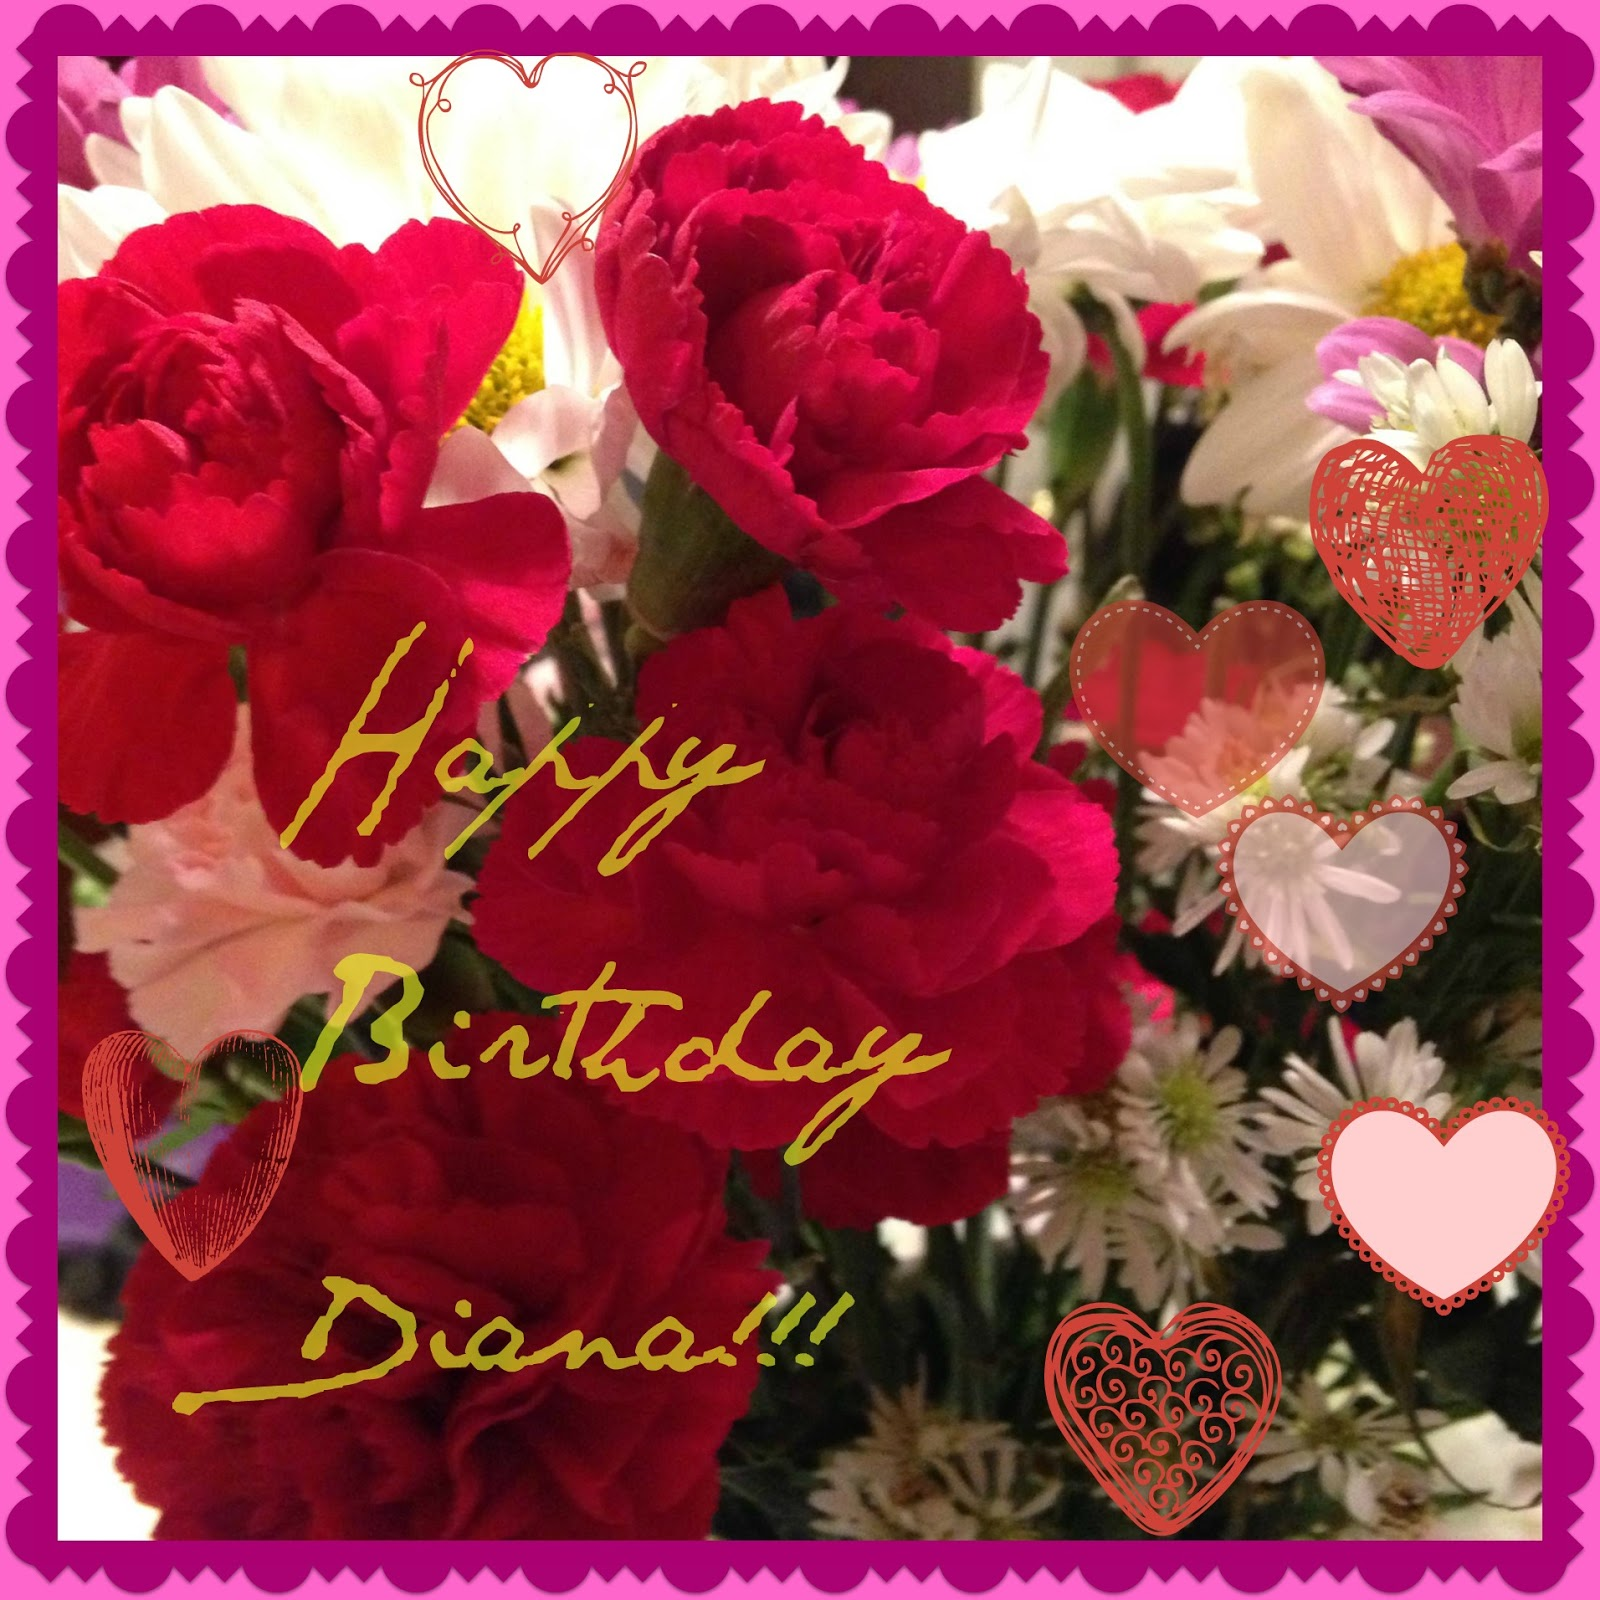 Overcoming with god happy birthday diana happy birthday diana izmirmasajfo